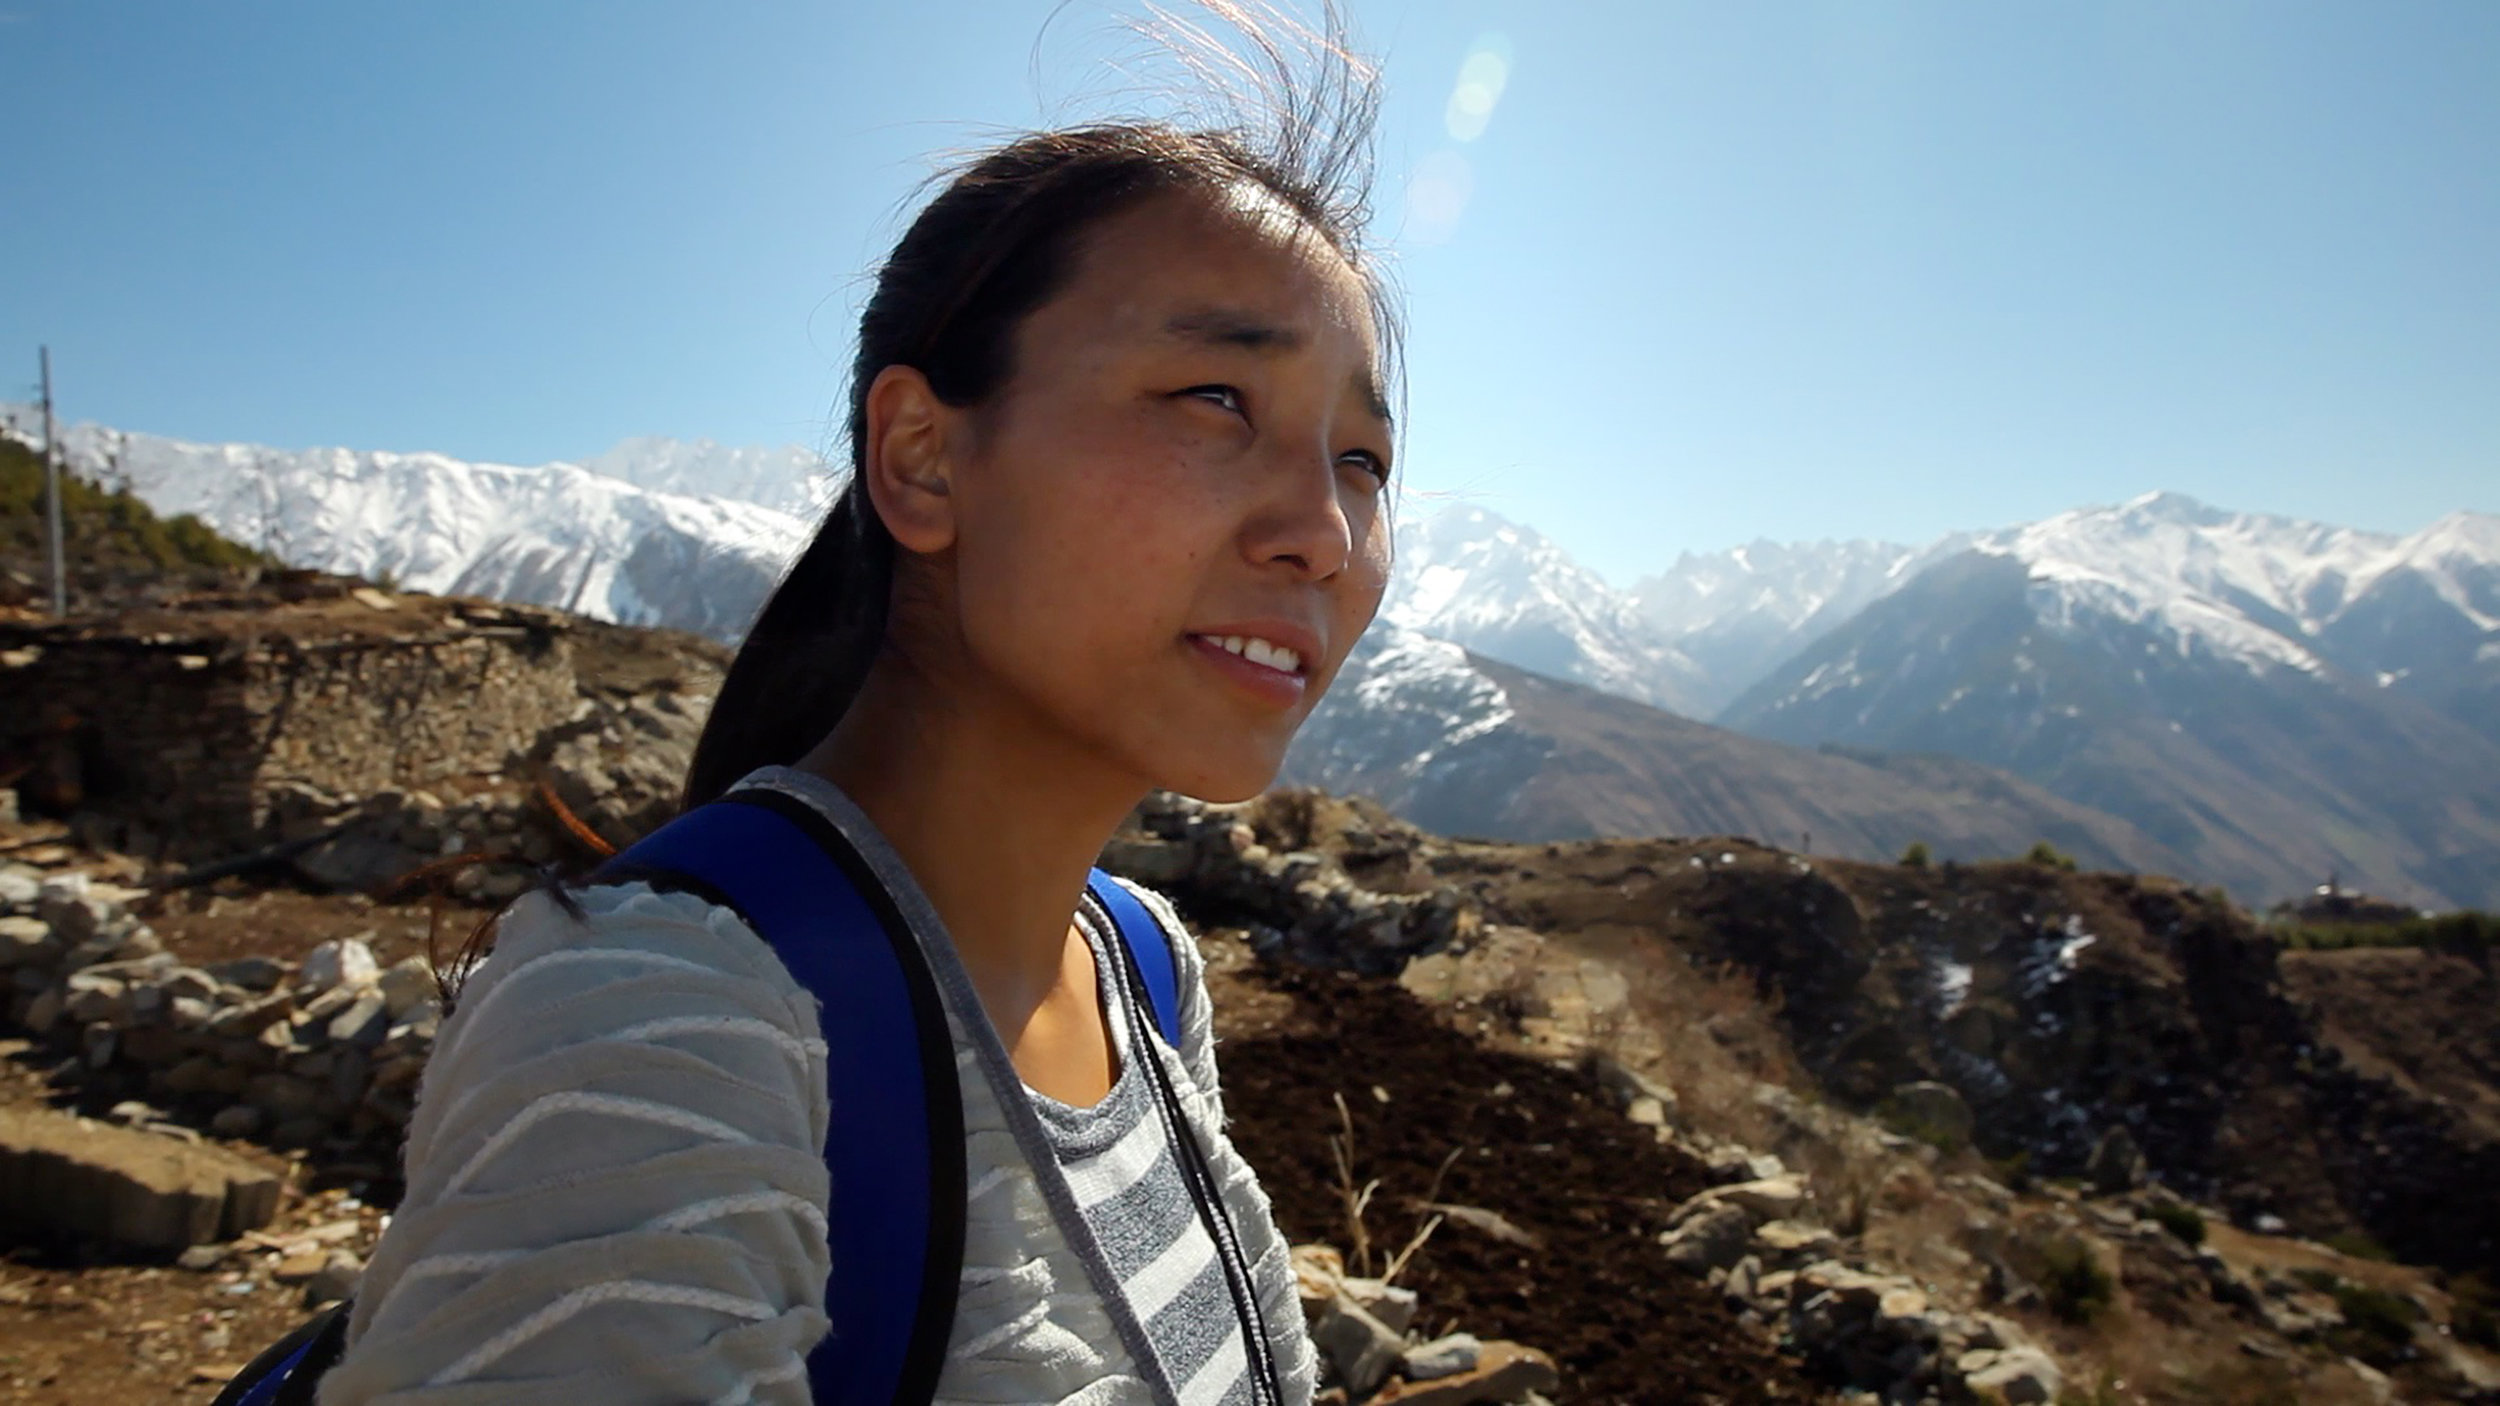 Tsering Deki Lama, one of the stars of 'Children of the Snowland.' CREDIT: Dartmouth Films